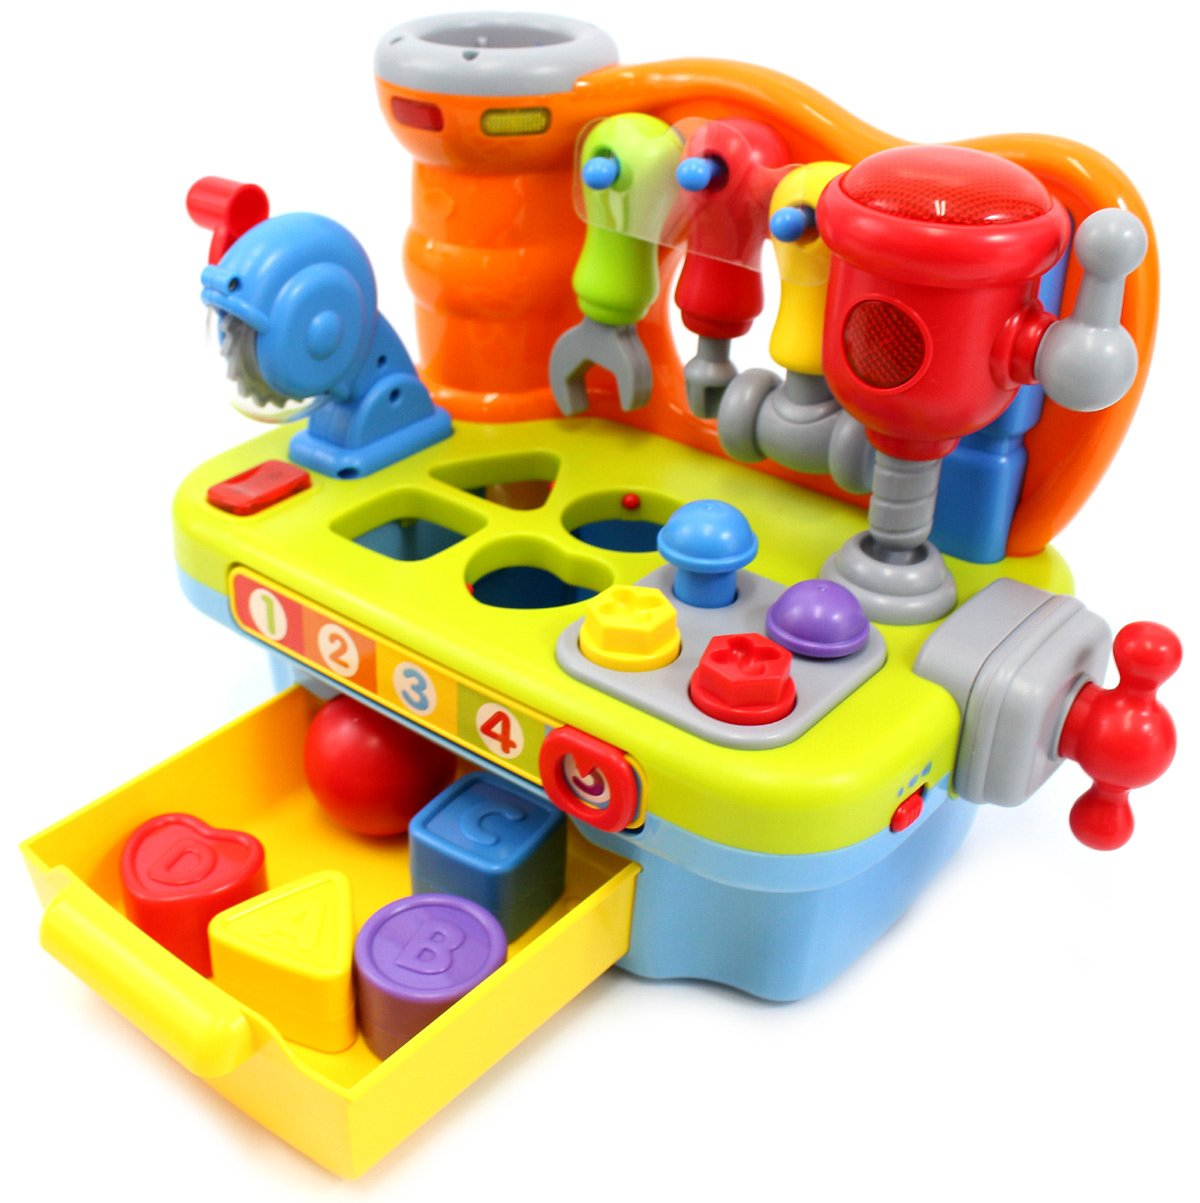 PowerTRC Little Engineer Multifunctional Musical Learning Tool Workbench for Kids by PowerTRC (Image #4)